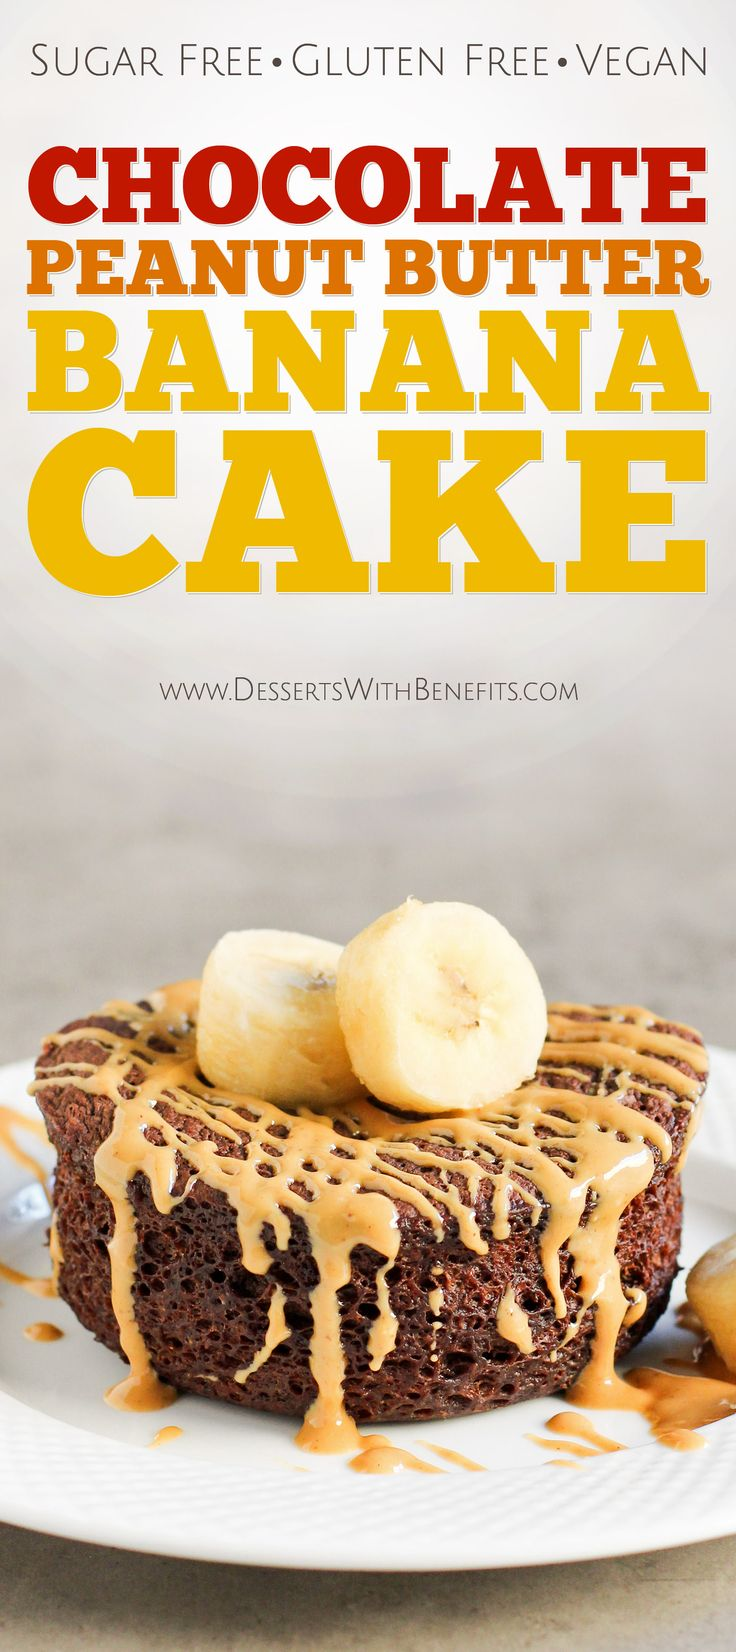 You can make this healthy-without-the-healthy-taste Single-Serving Chocolate Peanut Butter Banana Microwave Cake in five minutes flat! It's so light, fluffy, and moist, it's hard to believe it's also refined sugar free, high protein, high fiber, gluten free, and vegan! -- Healthy Dessert Recipes at the Desserts With Benefits Blog